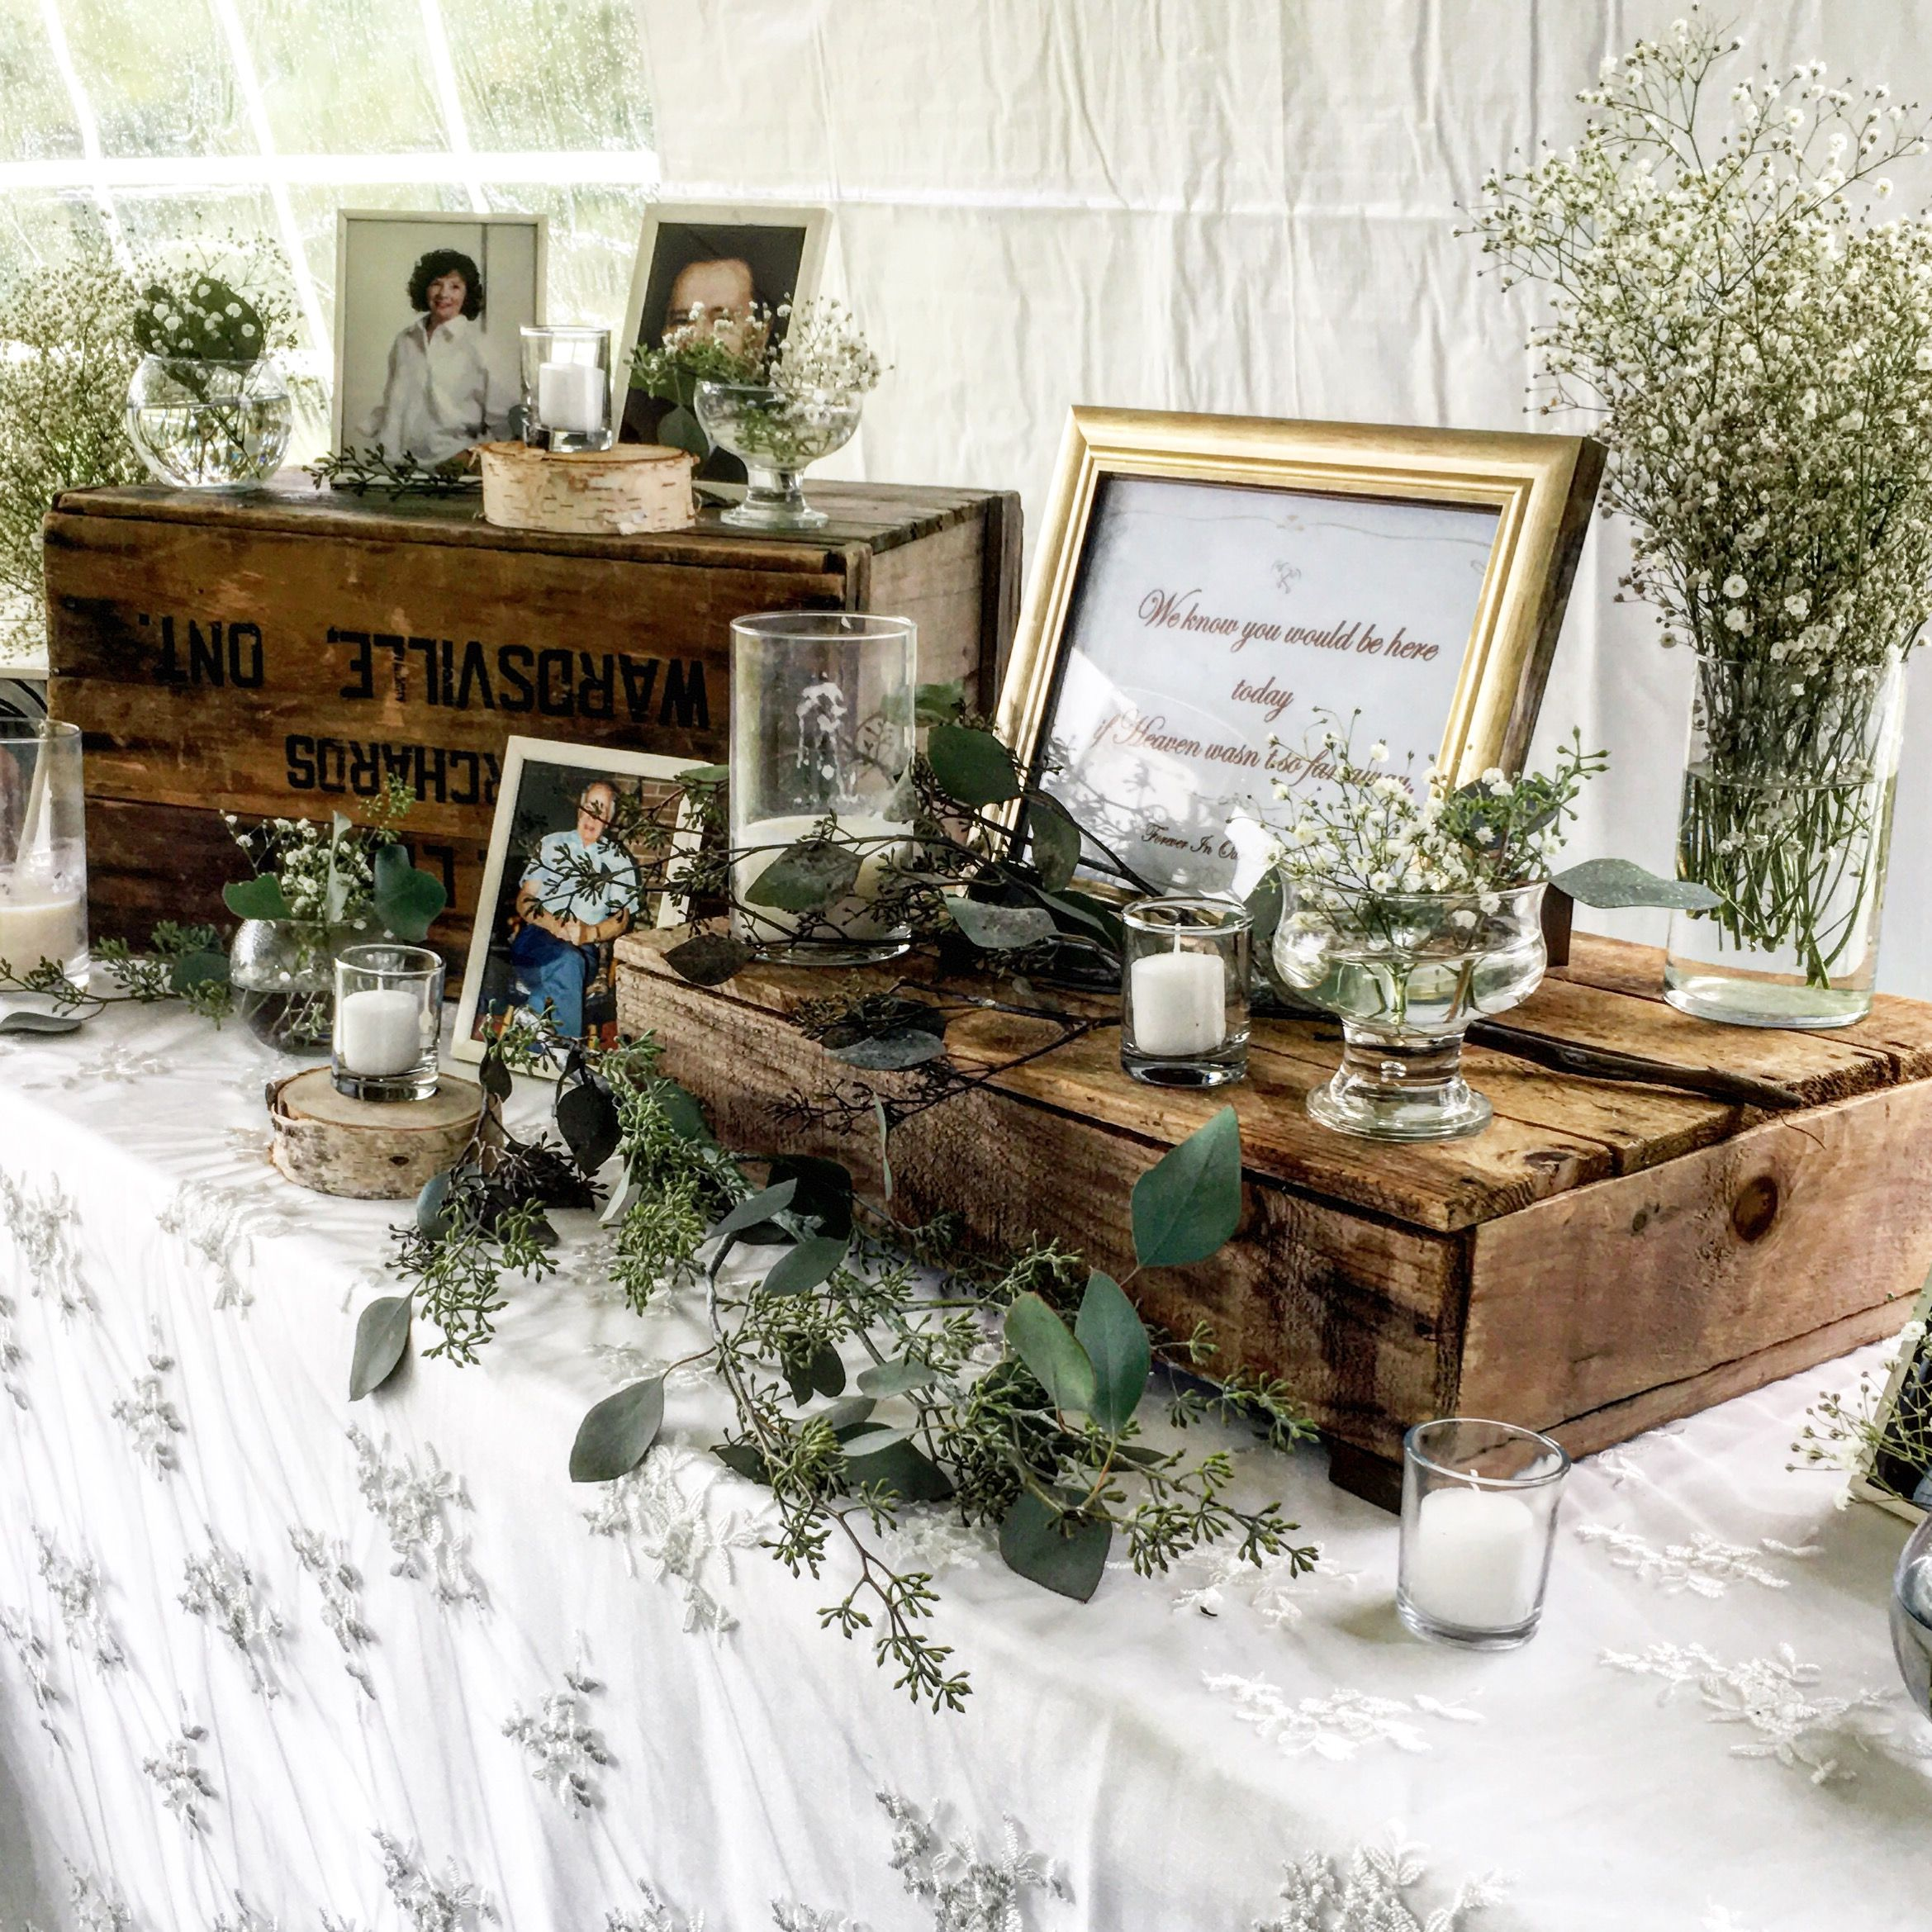 Gift Table At Wedding Reception: Pin By Nara Yoon On Phototable In 2019